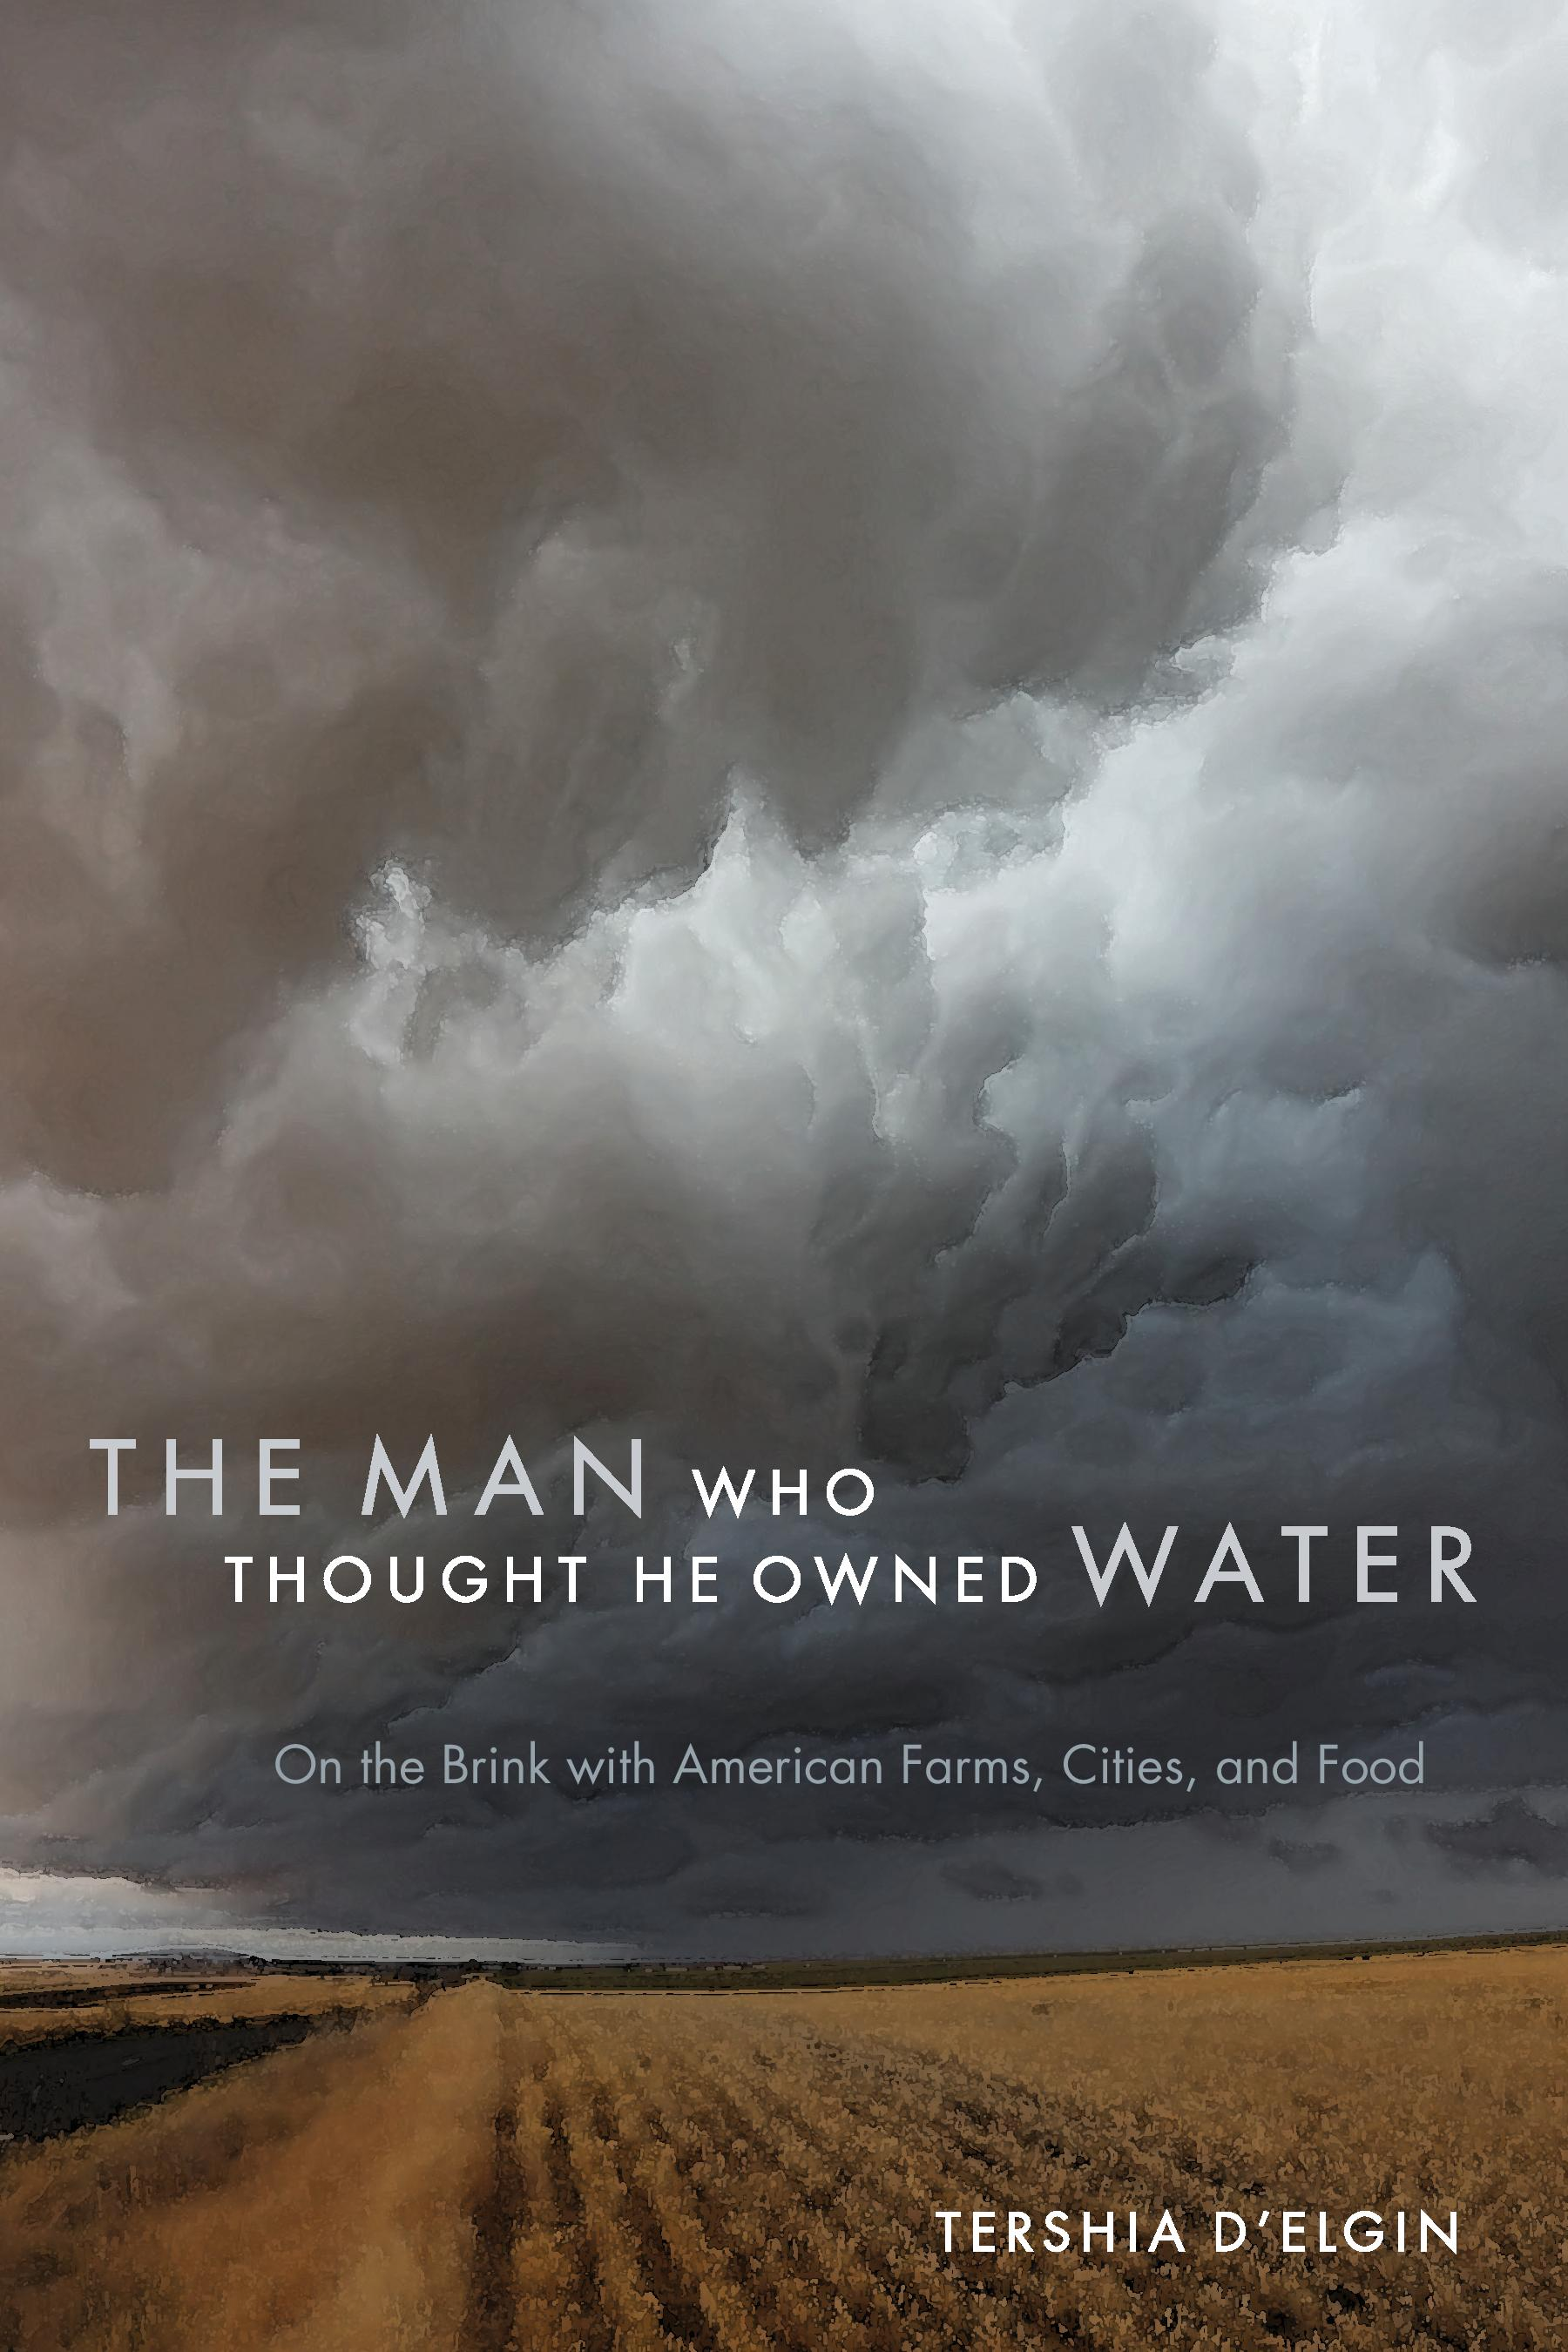 Photo: The Man Who Thought He Owned Water book cover